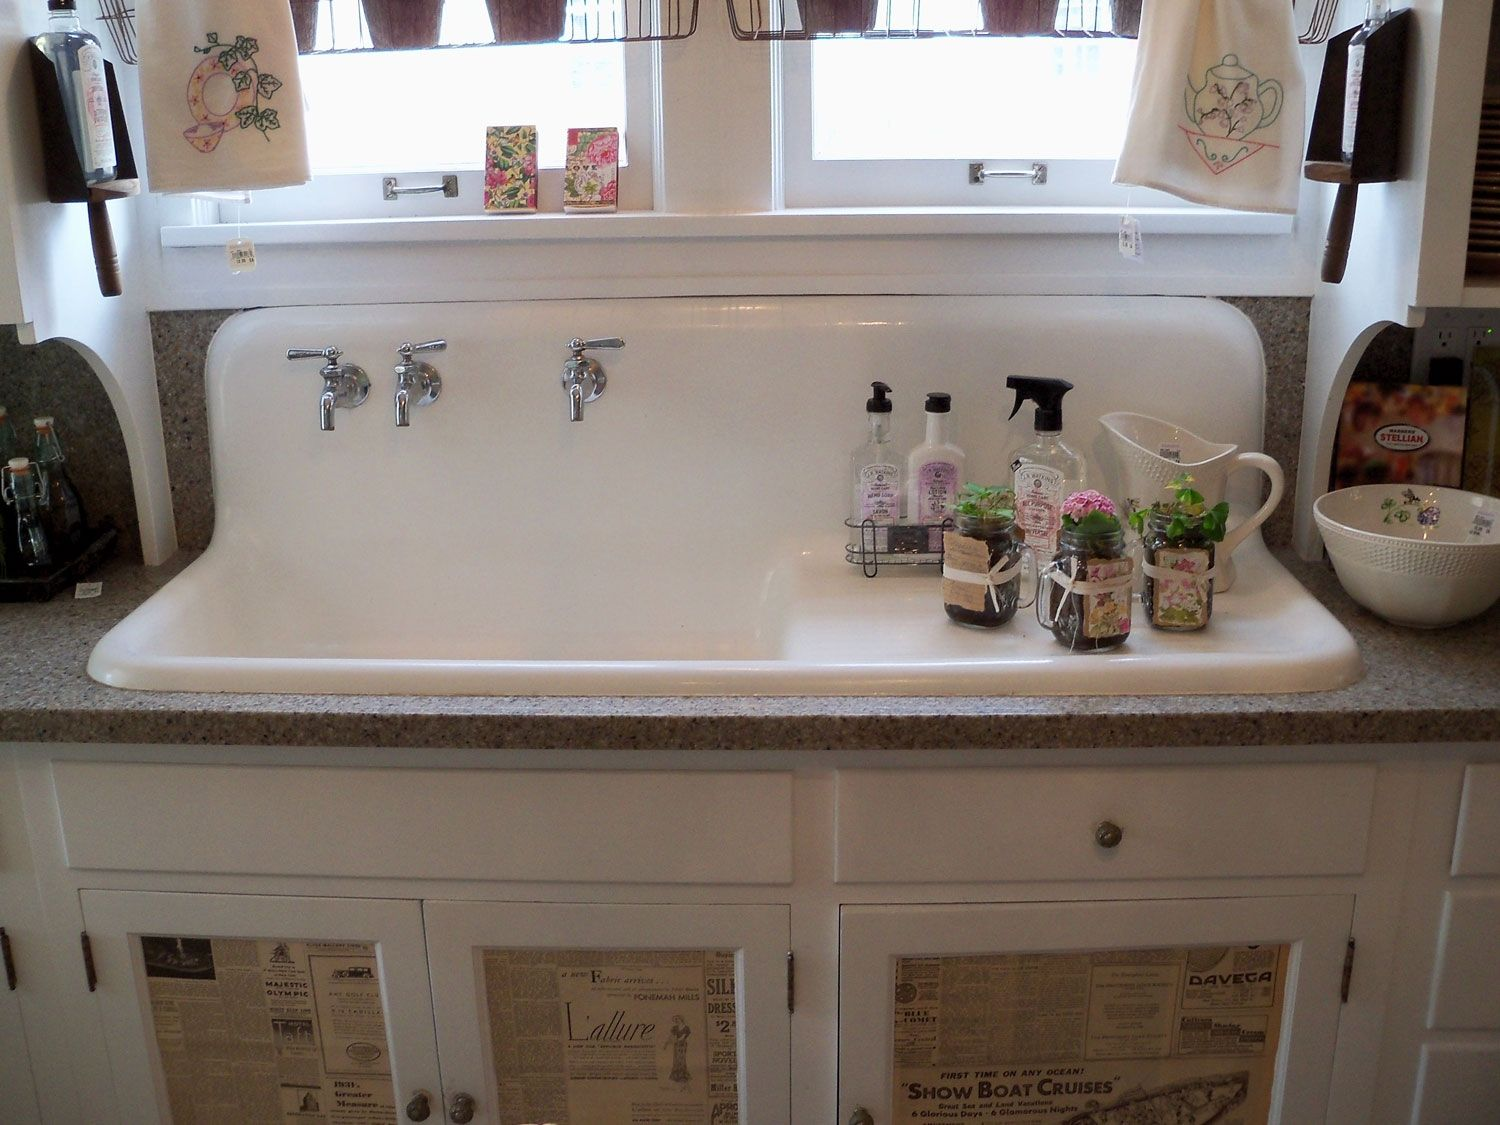 A New High Back Sink And Faucet In Our Cottage Kitchen Cottage Style Kitchen Farmhouse Sink Kitchen Kitchen Redecorating